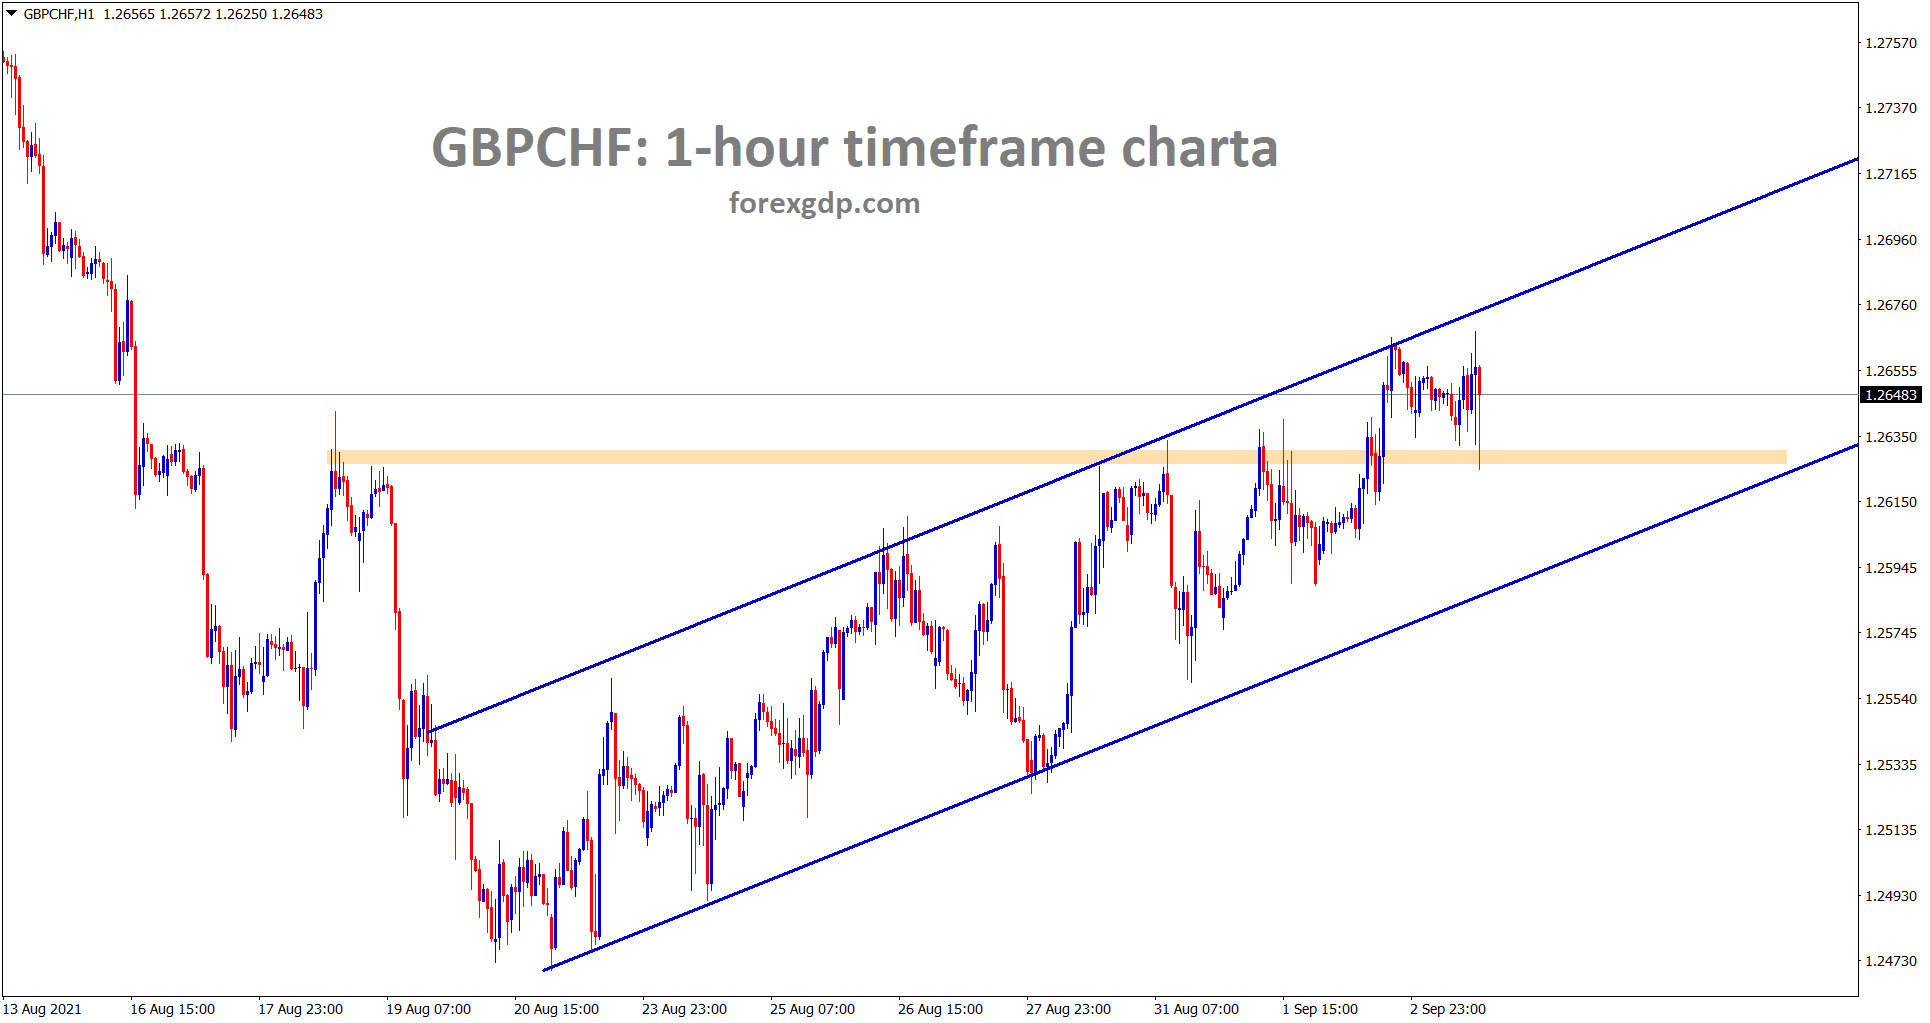 GBPCHF is moving in an Ascending channel breaking the recent resistance area